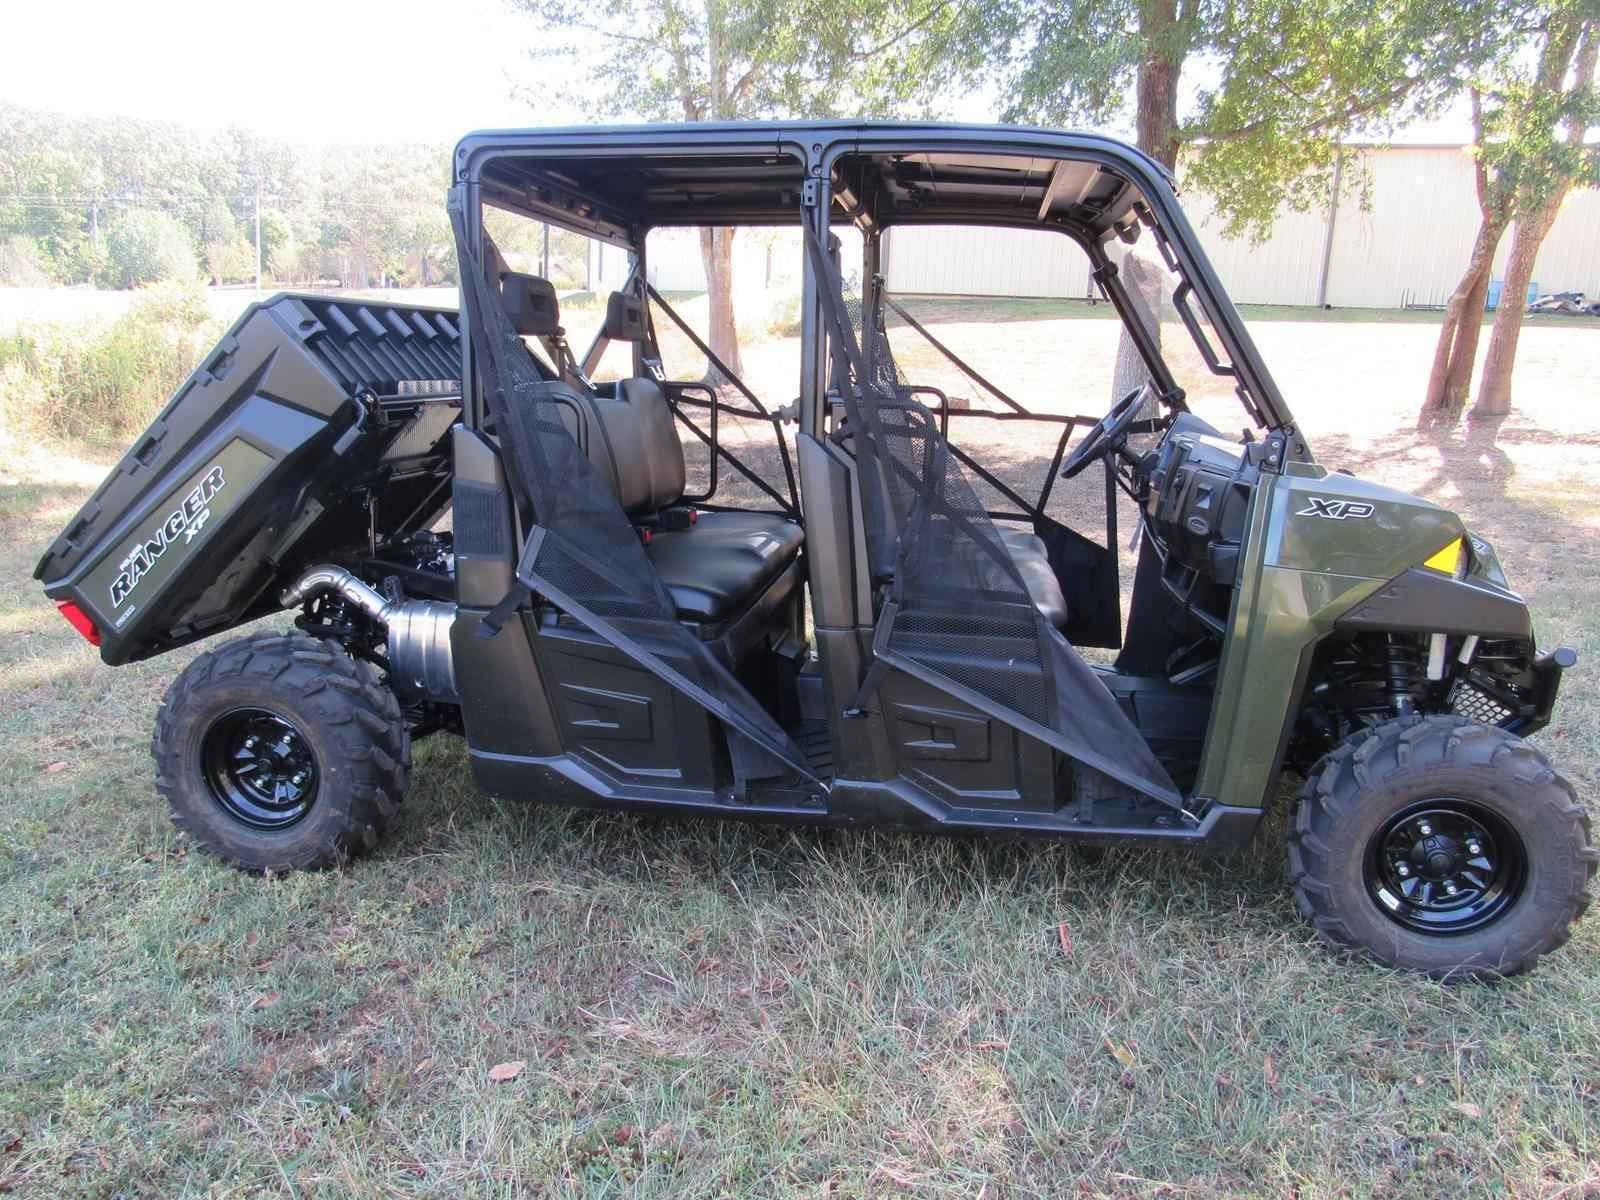 New 2017 Polaris RANGER Crew XP 1000 - 6 PASSENGER / ATVs For Sale in Alabama. 2017 POLARIS RANGER Crew XP 1000 - 6 PASSENGER /,